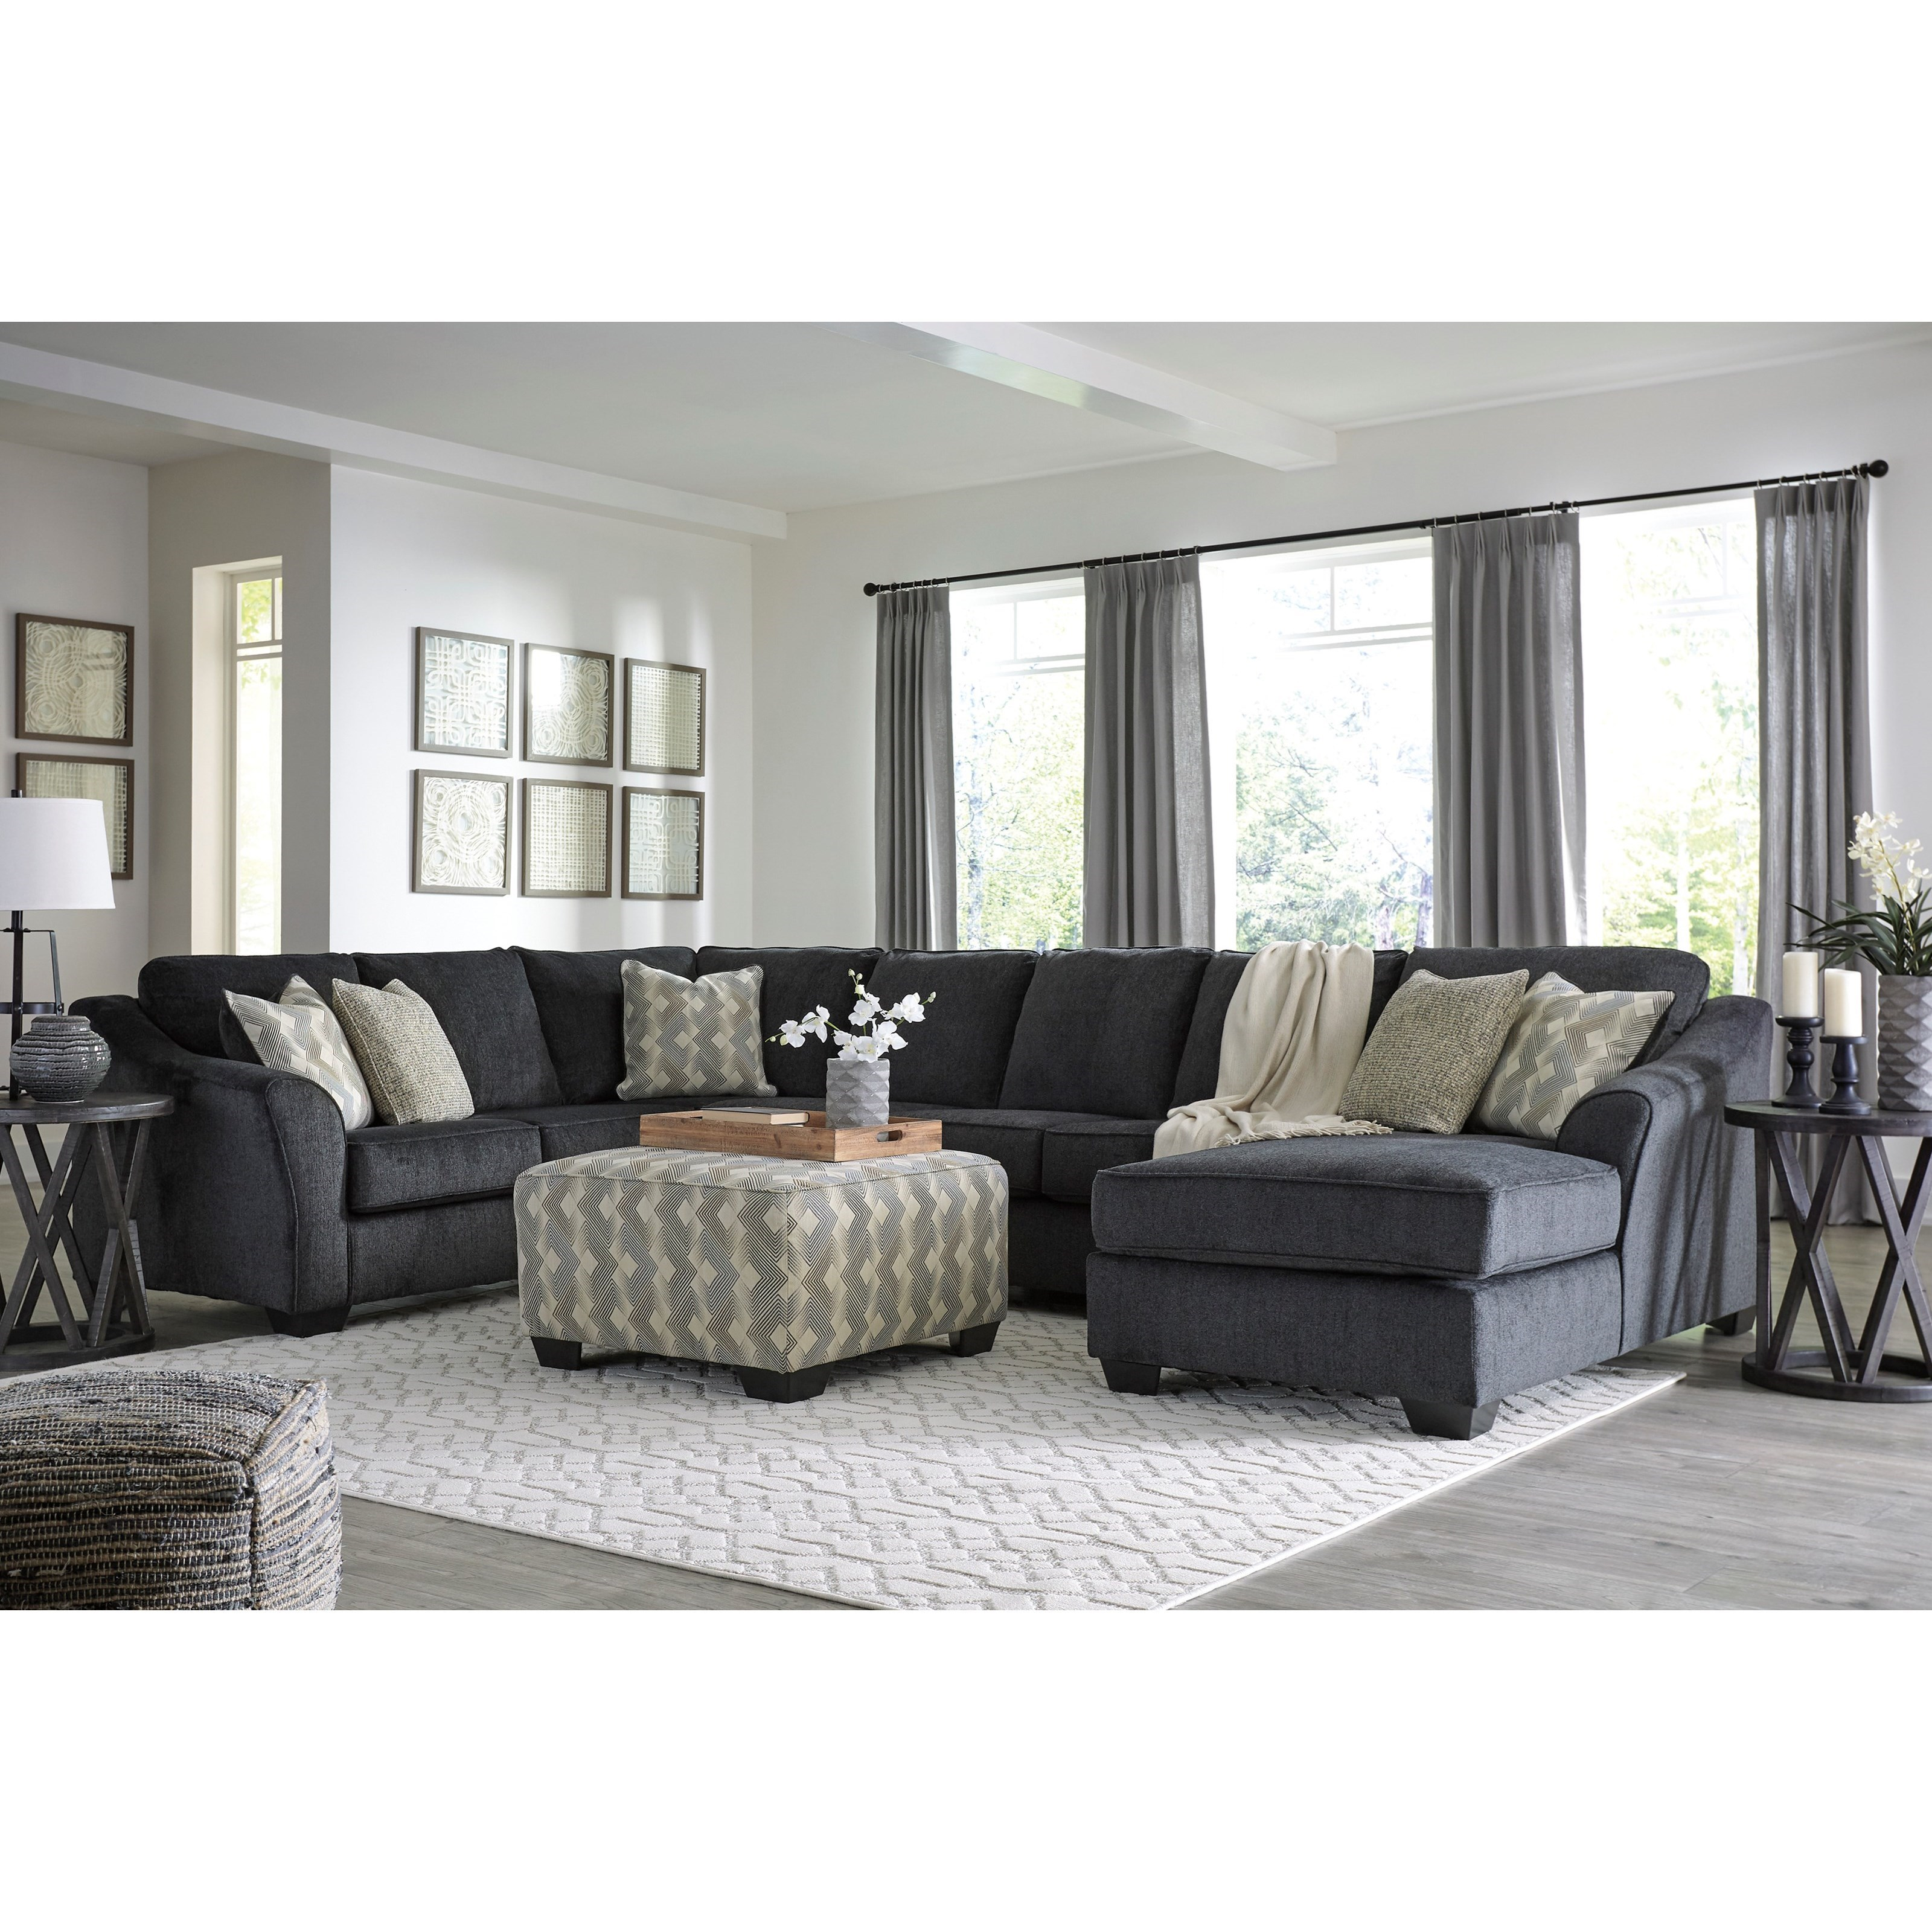 Eltmann Stationary Living Room Group by Signature Design by Ashley at Houston's Yuma Furniture